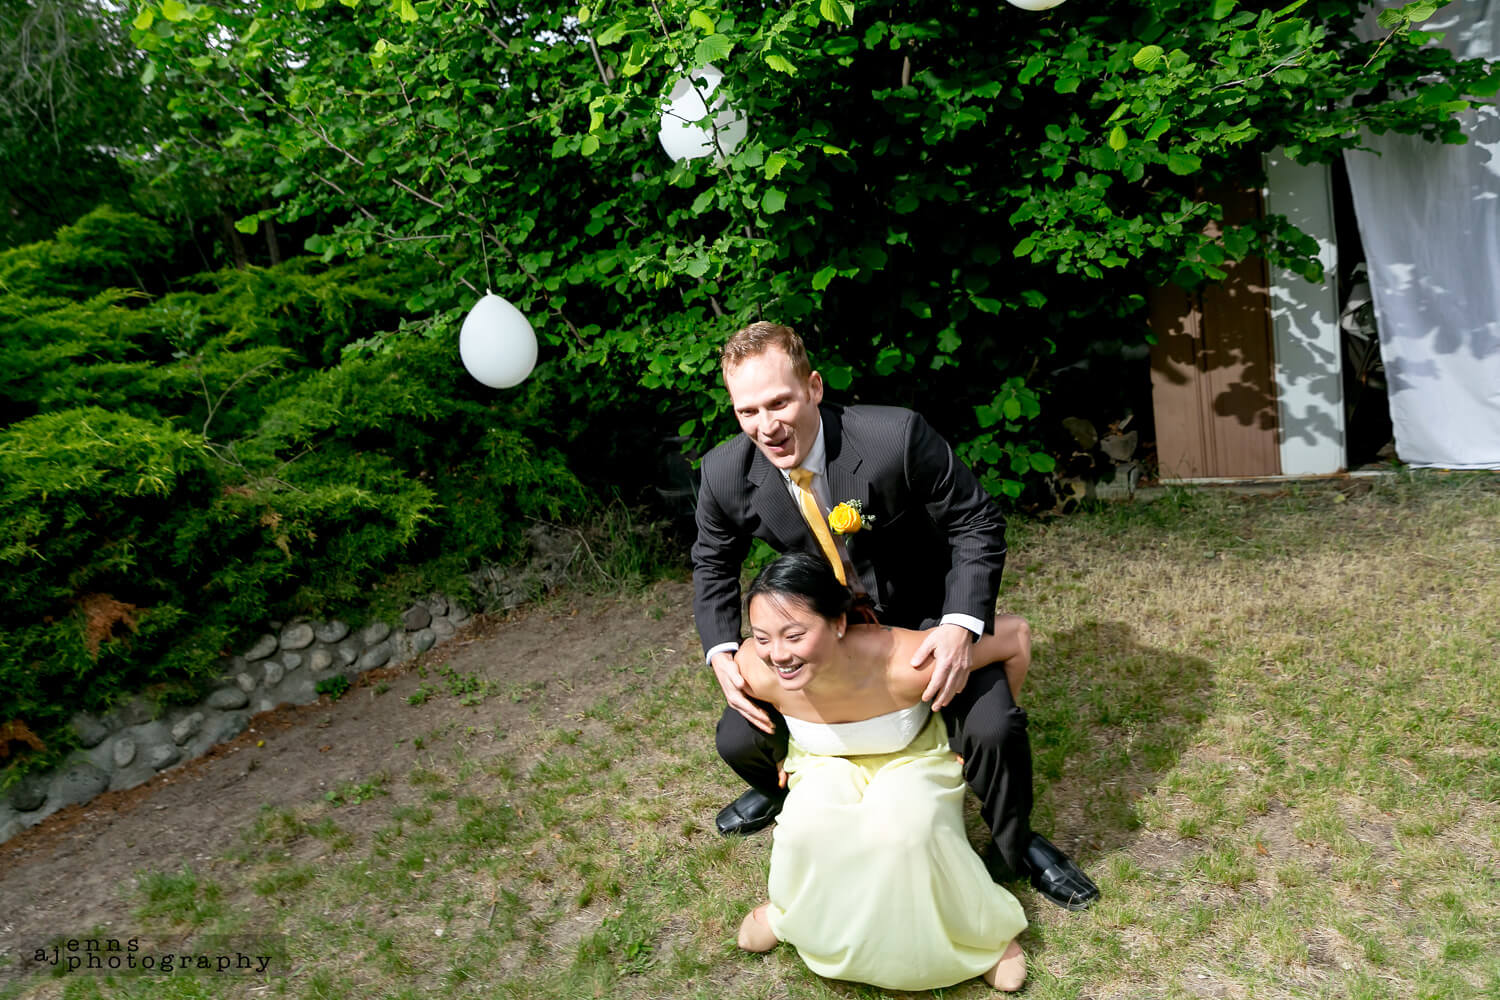 The bridesmaid trying to give a groomsmen a piggy back